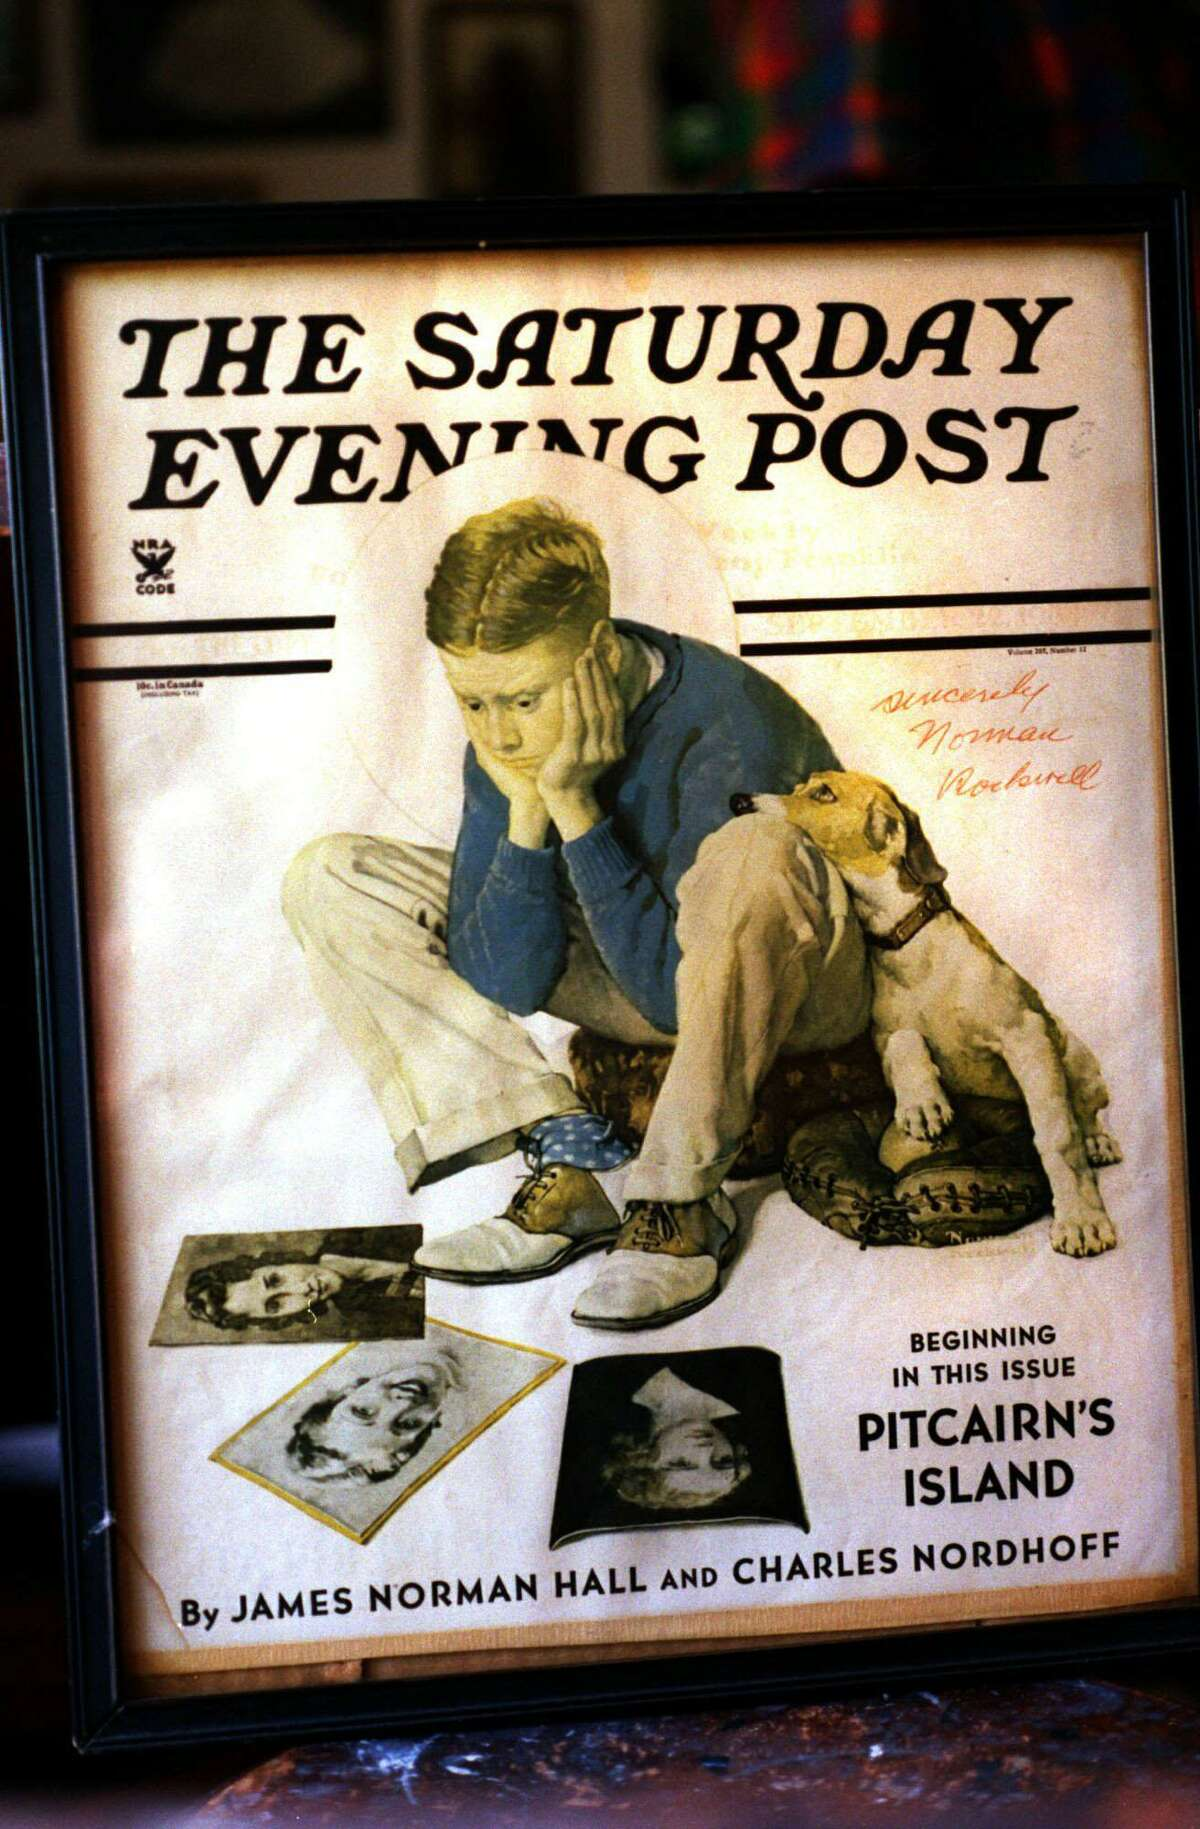 The Sept. 15, 1934, Saturday Evening Post cover by Norman Rockwell featured neighbor John Cullen Murphy as the model.